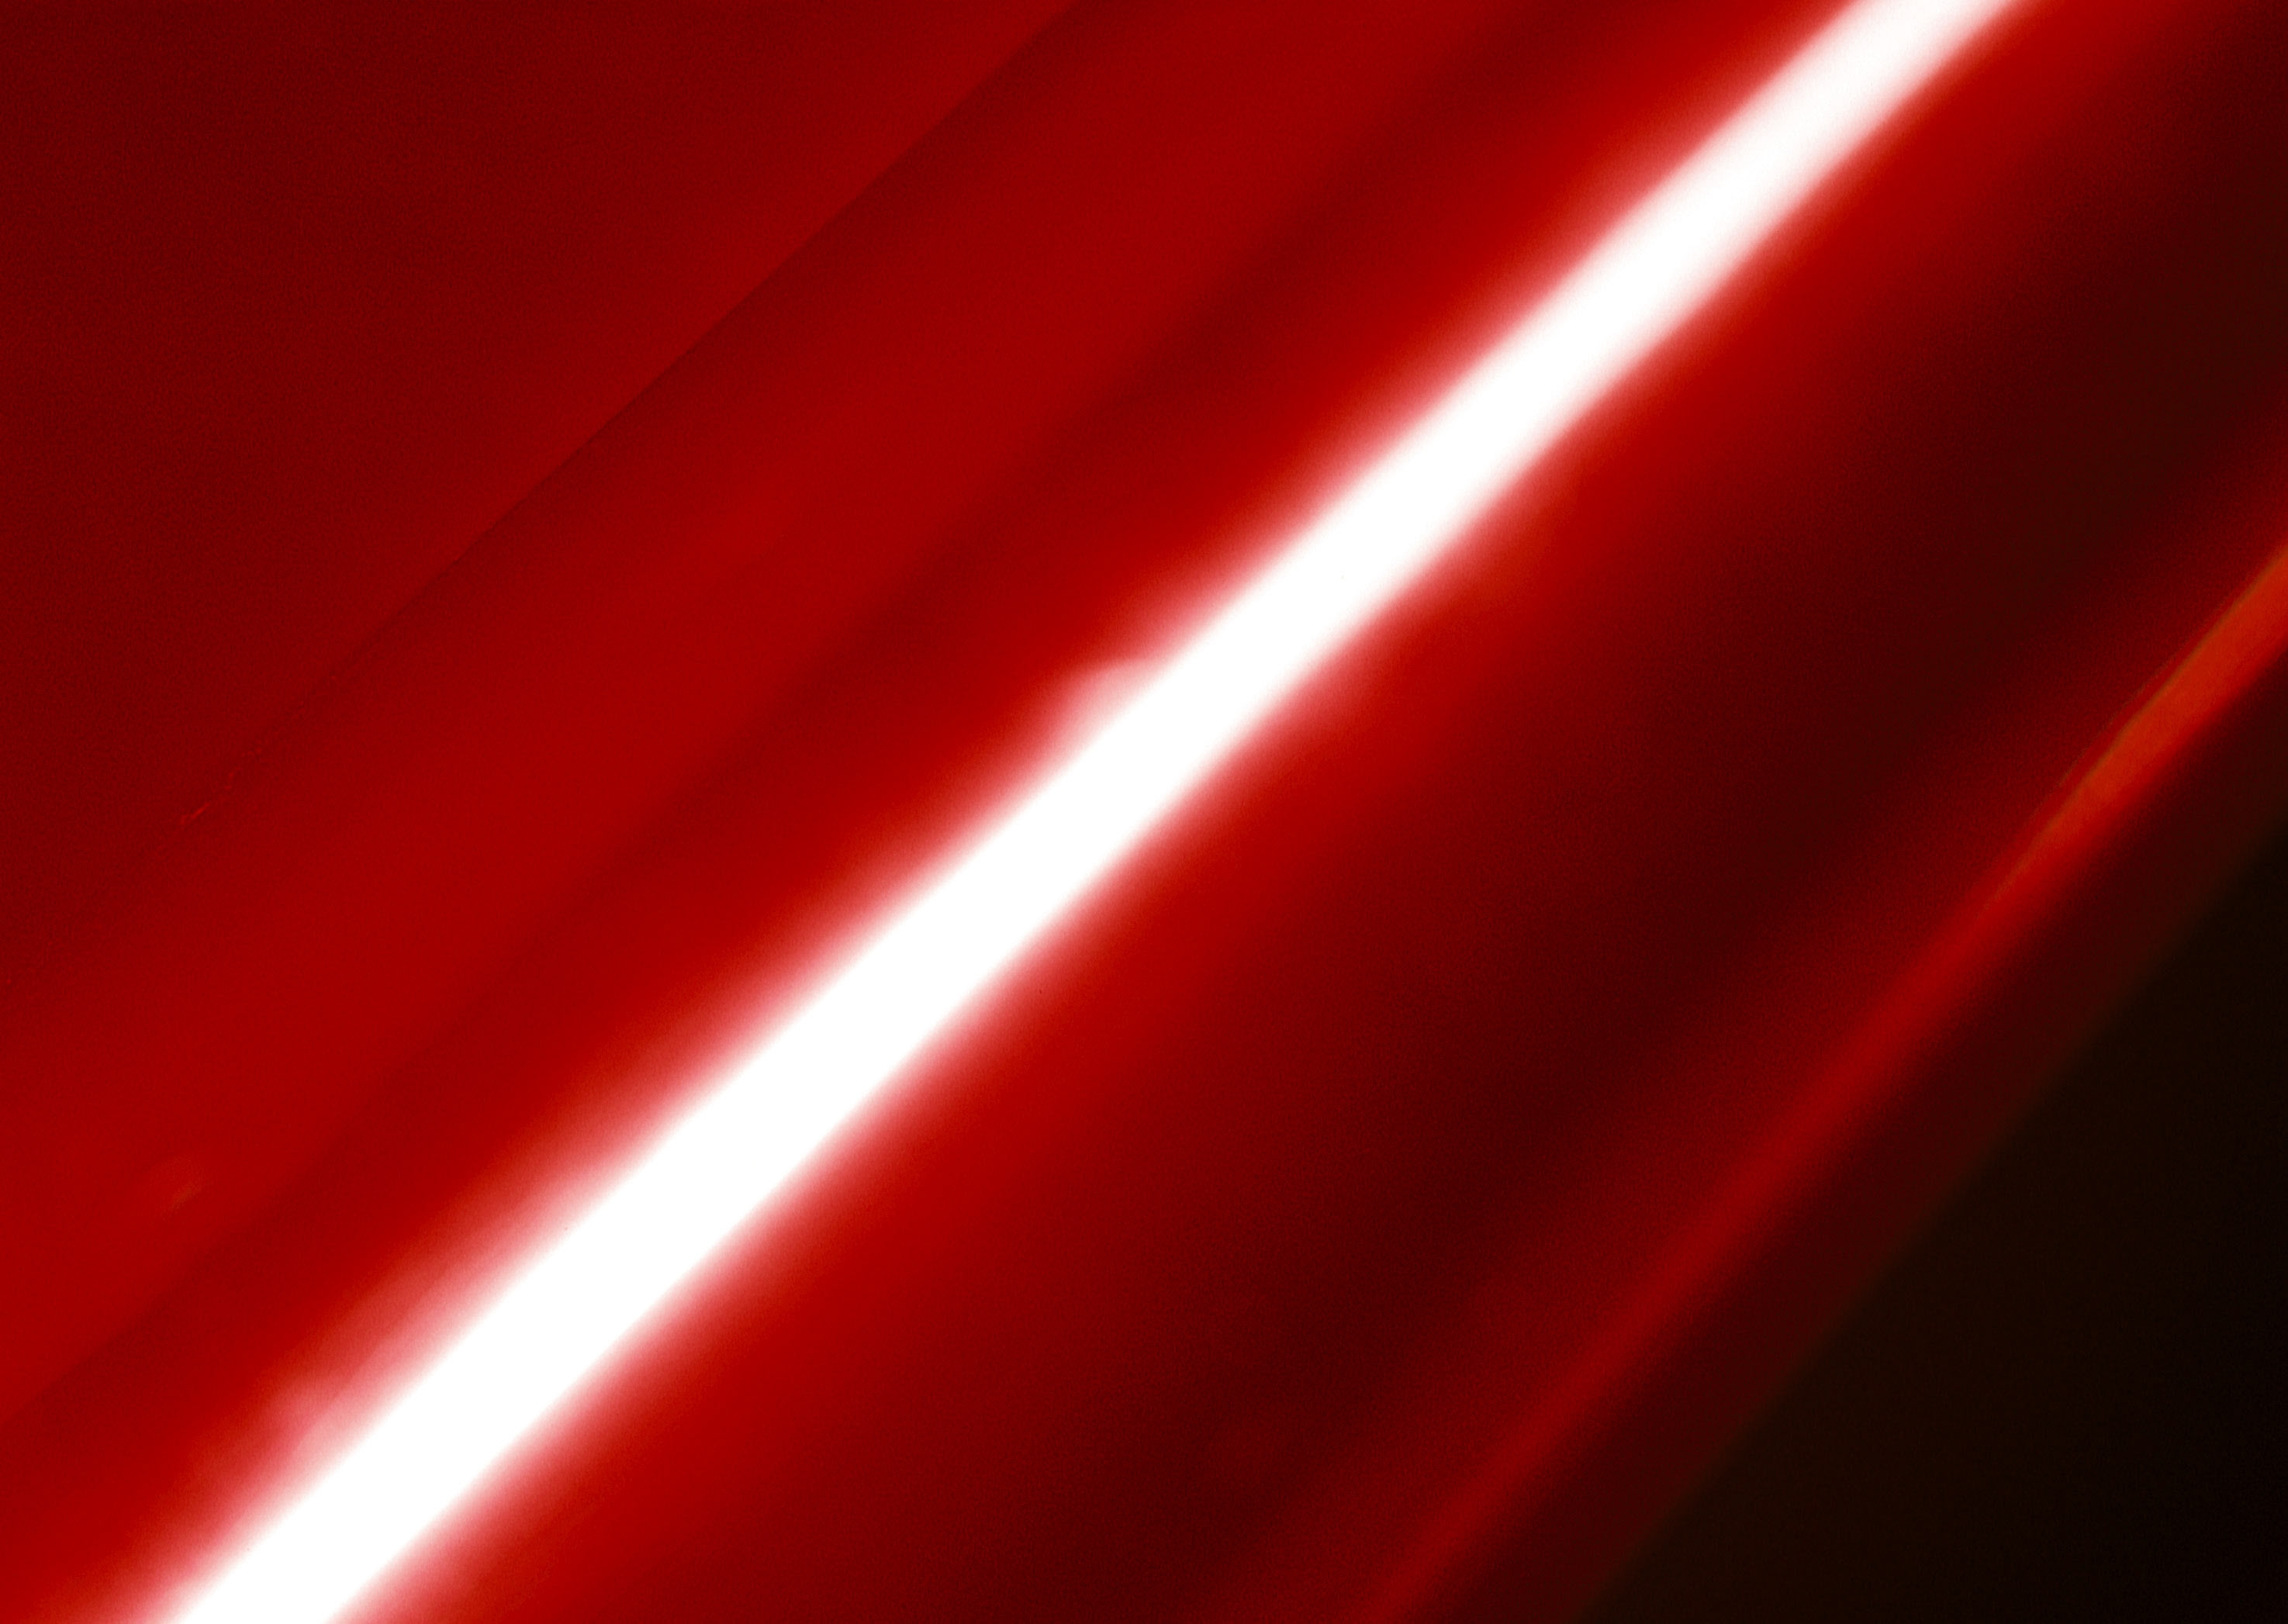 wallpaper background red linear - photo #22